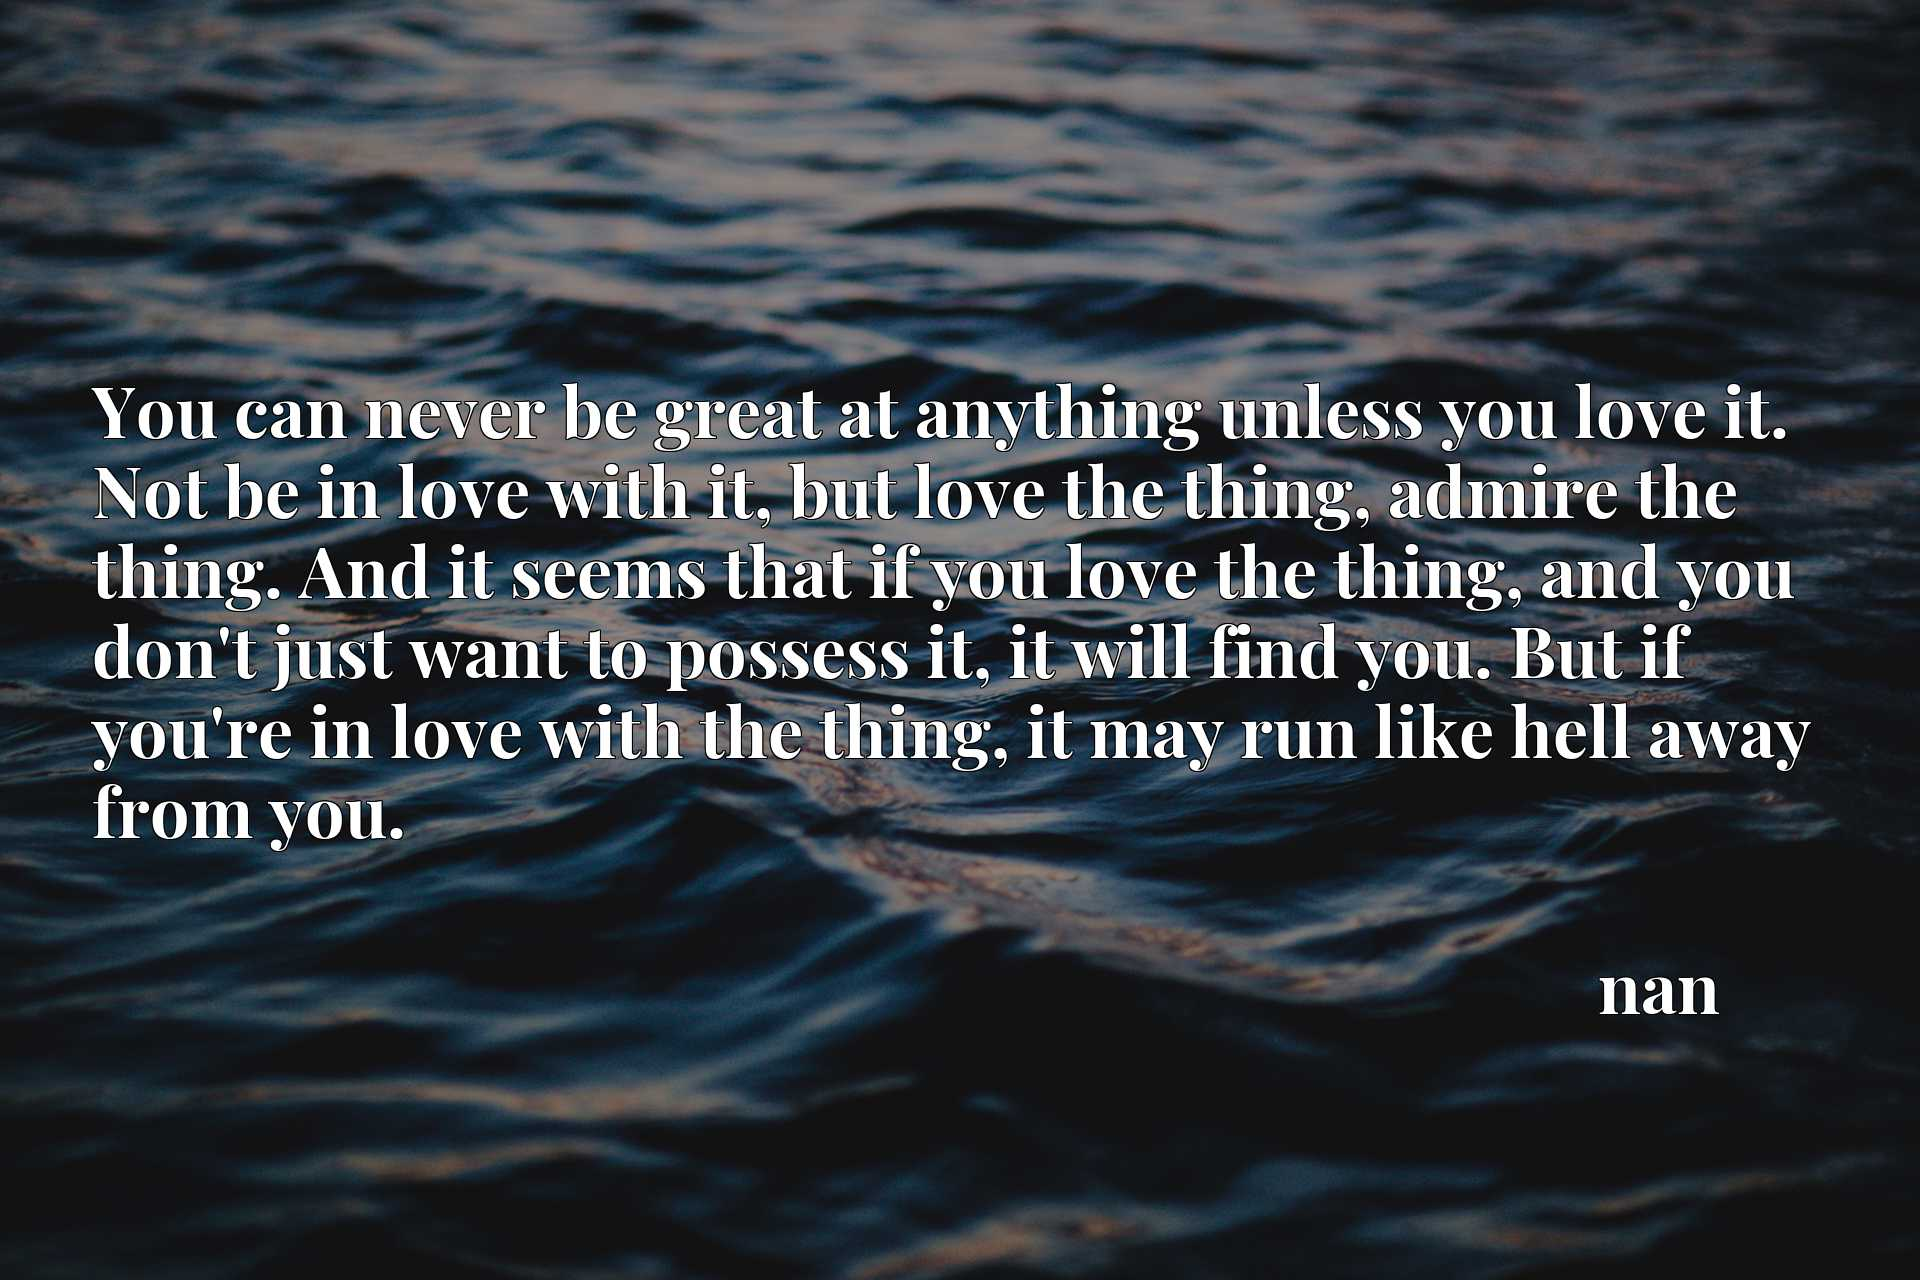 You can never be great at anything unless you love it. Not be in love with it, but love the thing, admire the thing. And it seems that if you love the thing, and you don't just want to possess it, it will find you. But if you're in love with the thing, it may run like hell away from you.